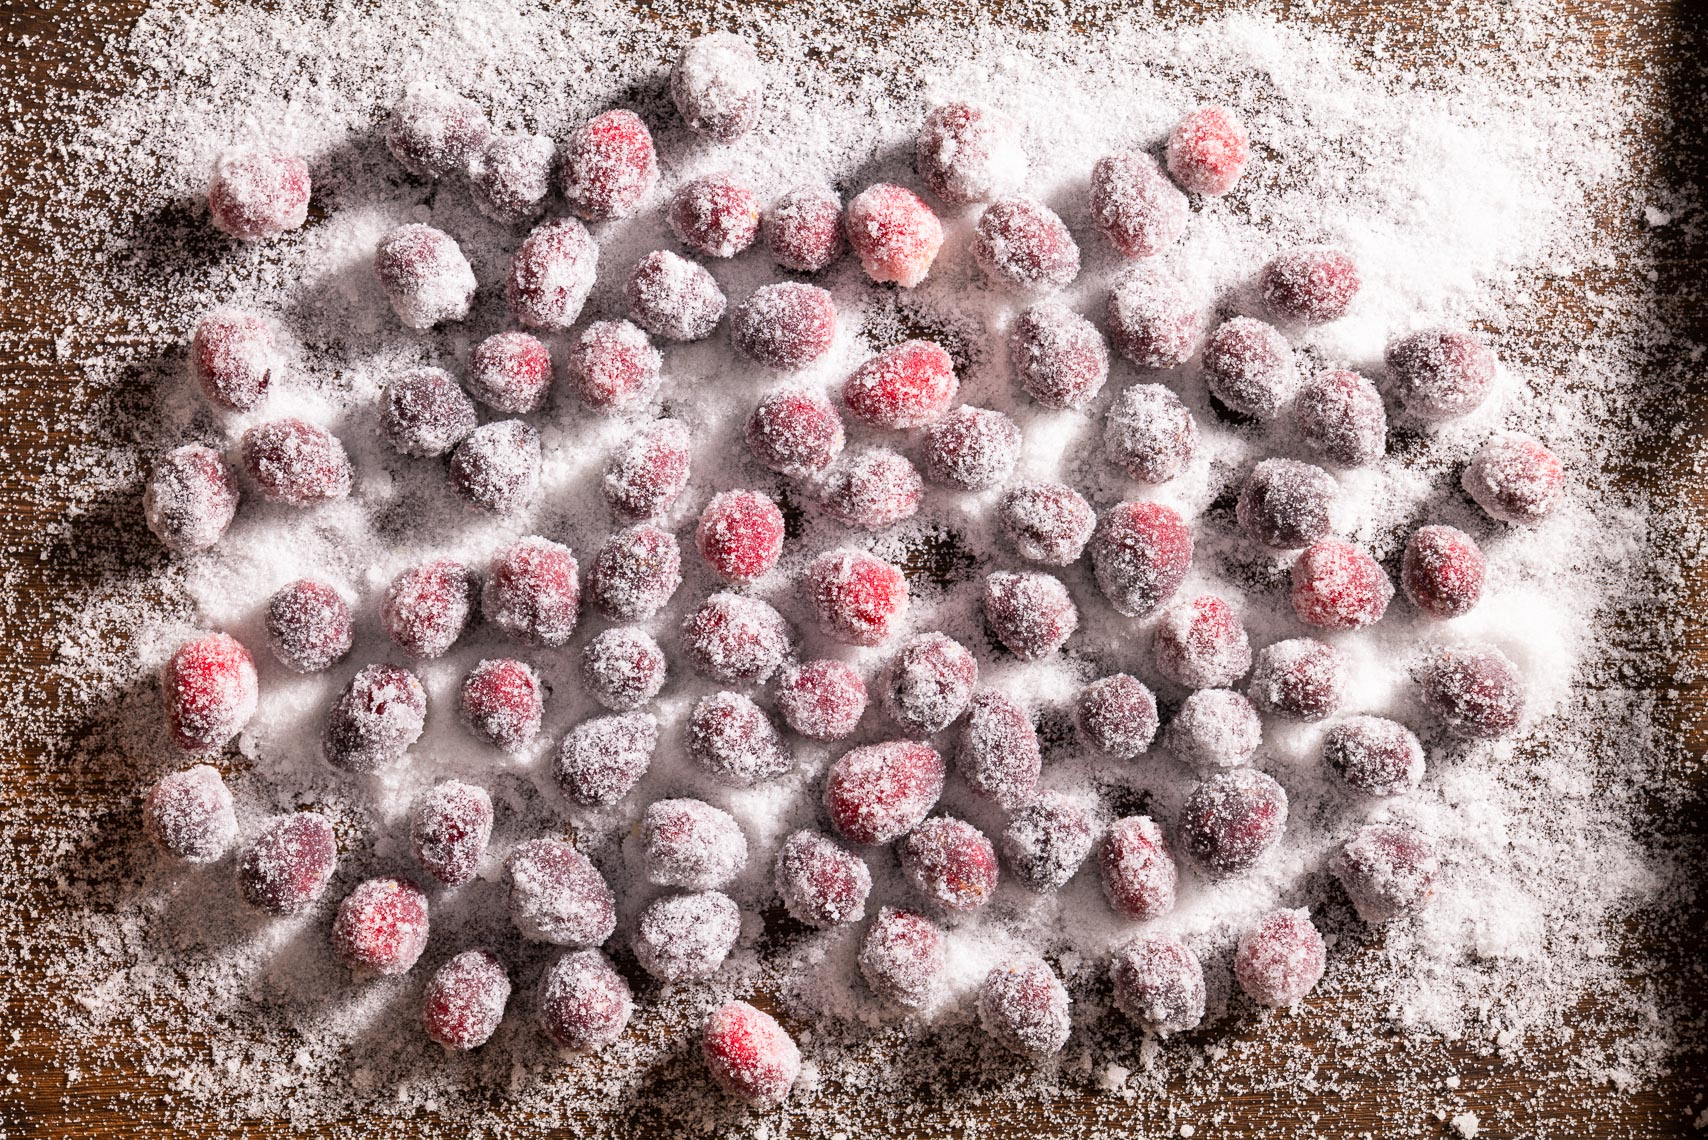 Sugar Coated Cranberries - Philadelphia, PA  Food Photographer